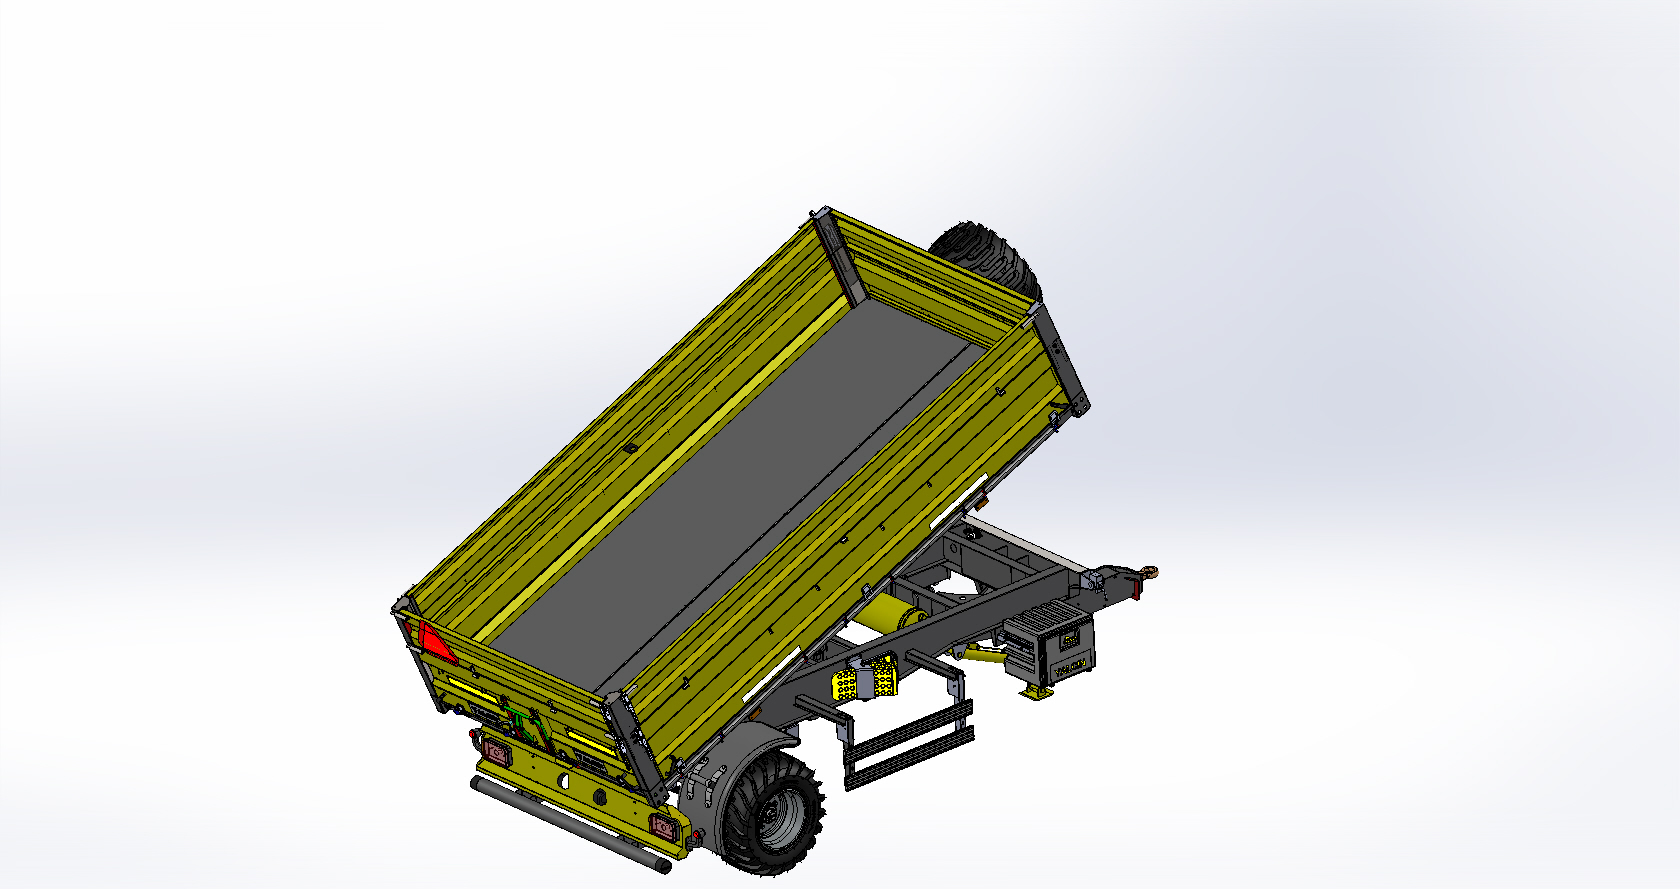 CURSO DE SOLIDWORKS REMOLQUES TRAILER